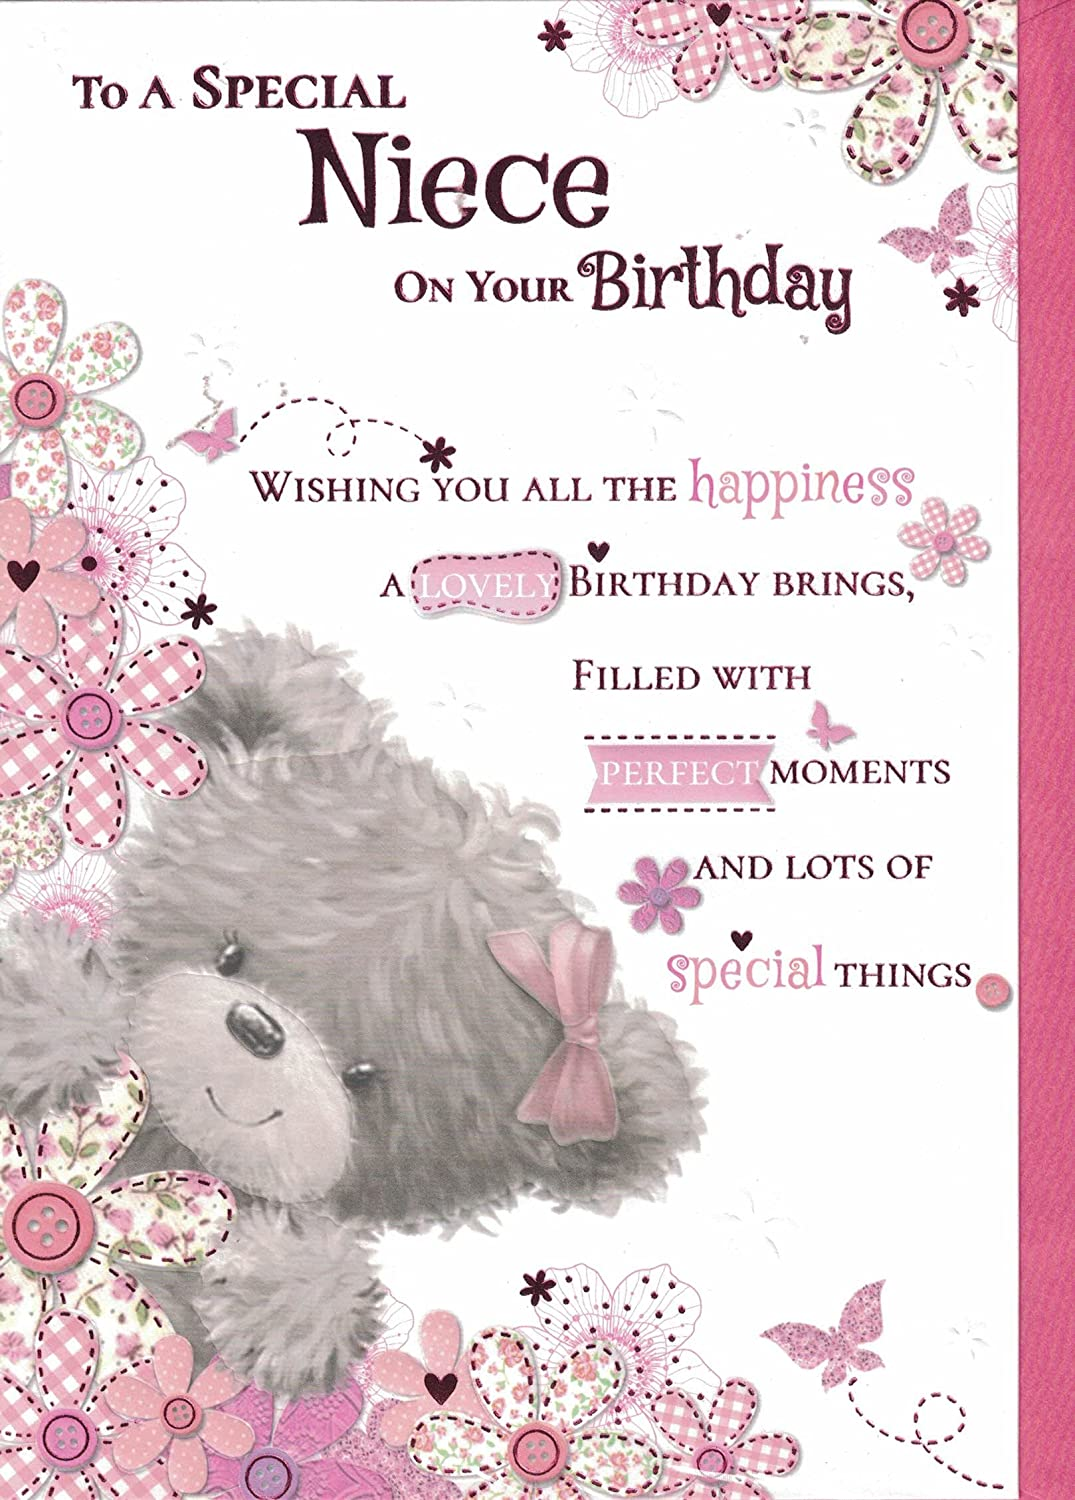 Niece Birthday Card To A Very Special Niece On Your Birthday